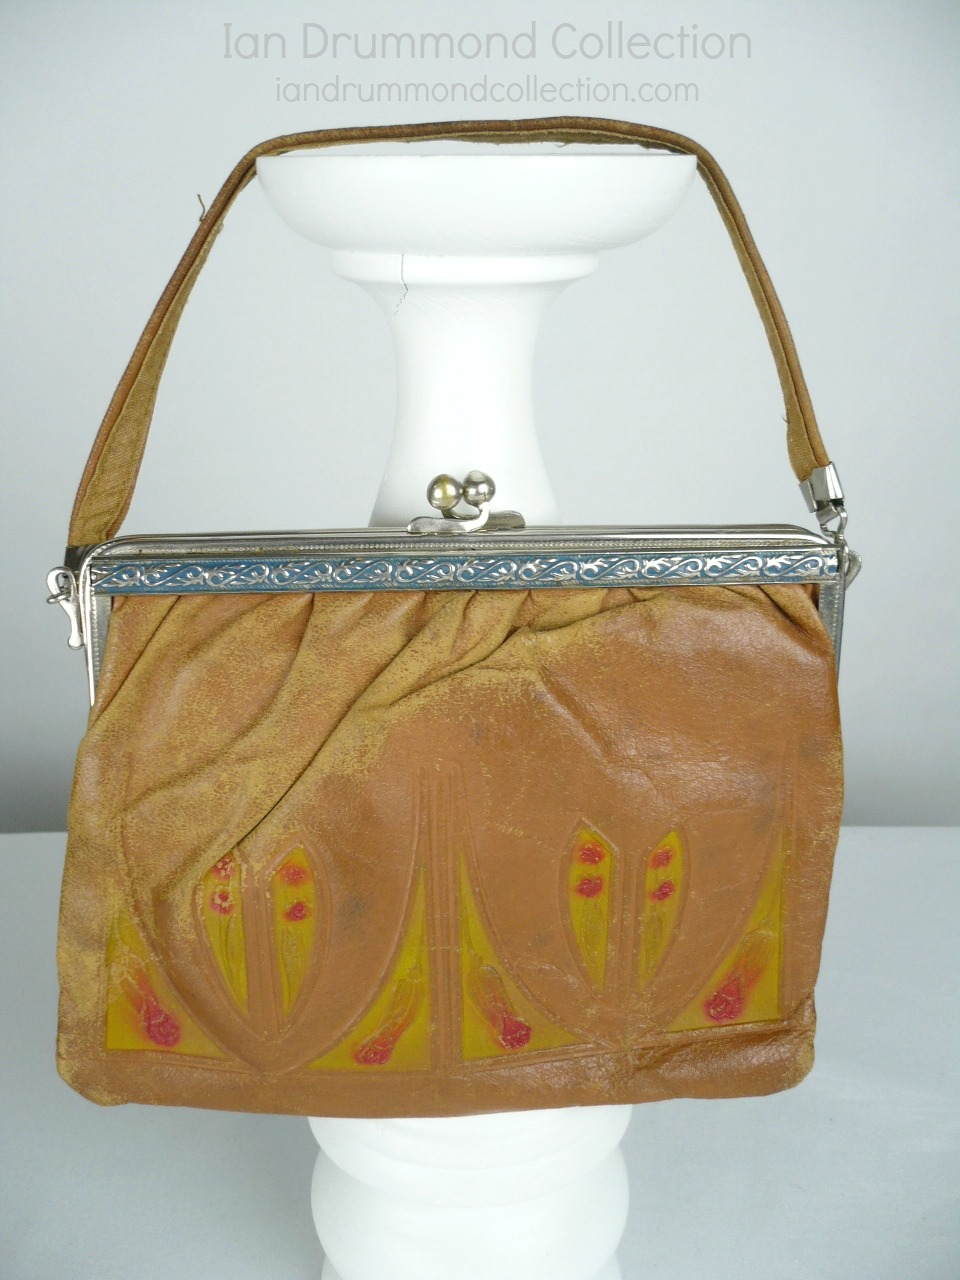 Ian Drummond Collection TV Movie Vintage Clothing Wardrobe Rental Toronto 1920s purse 12 (1)